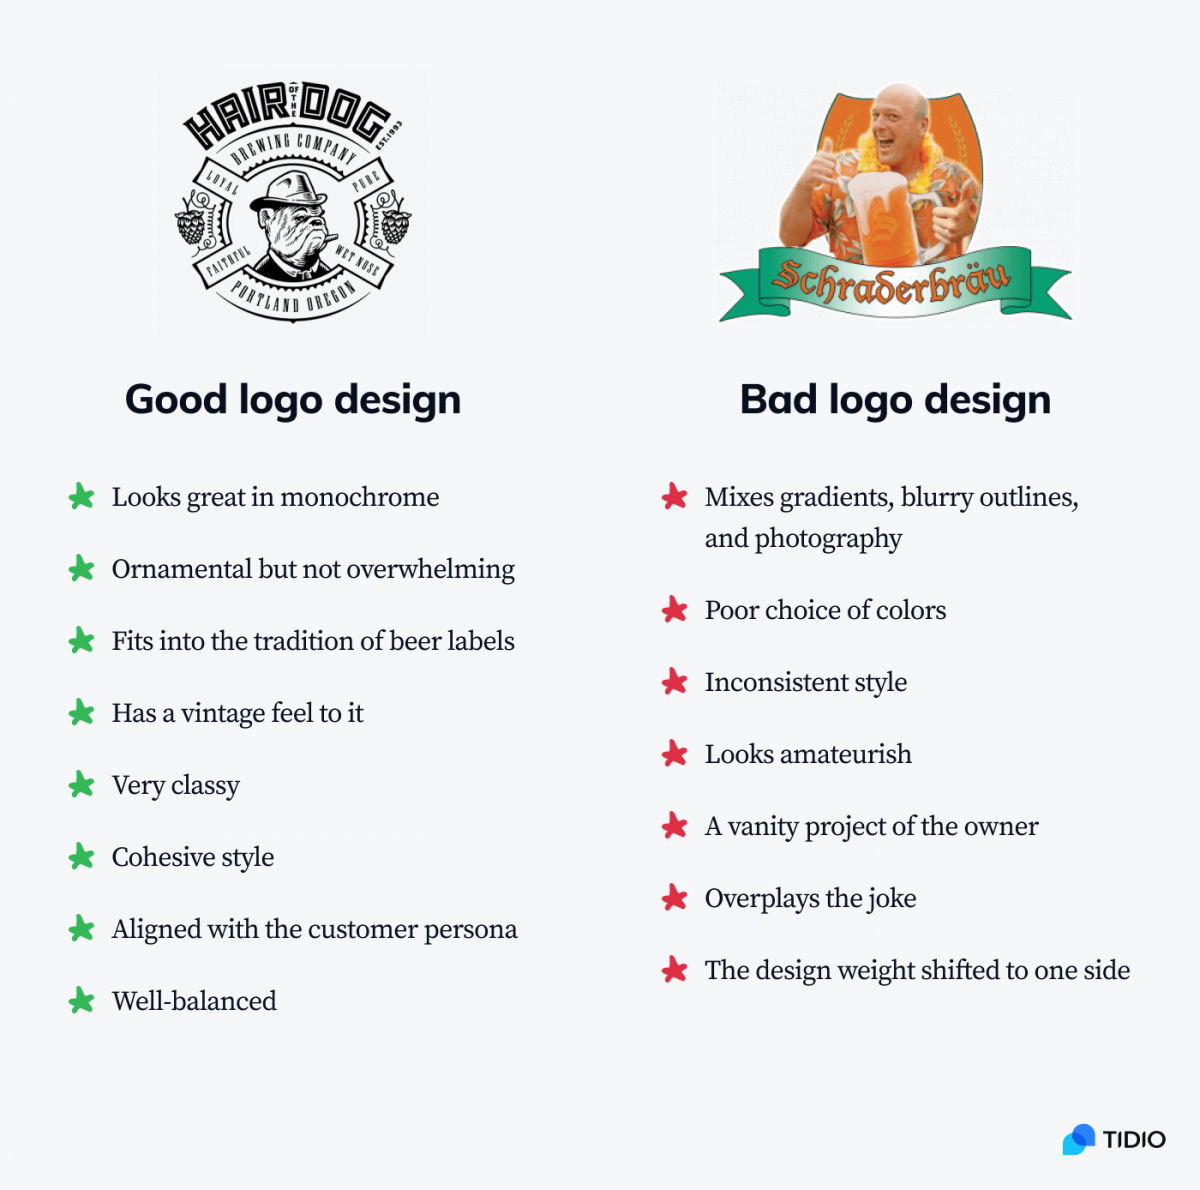 Main differences between a good and bad logo design